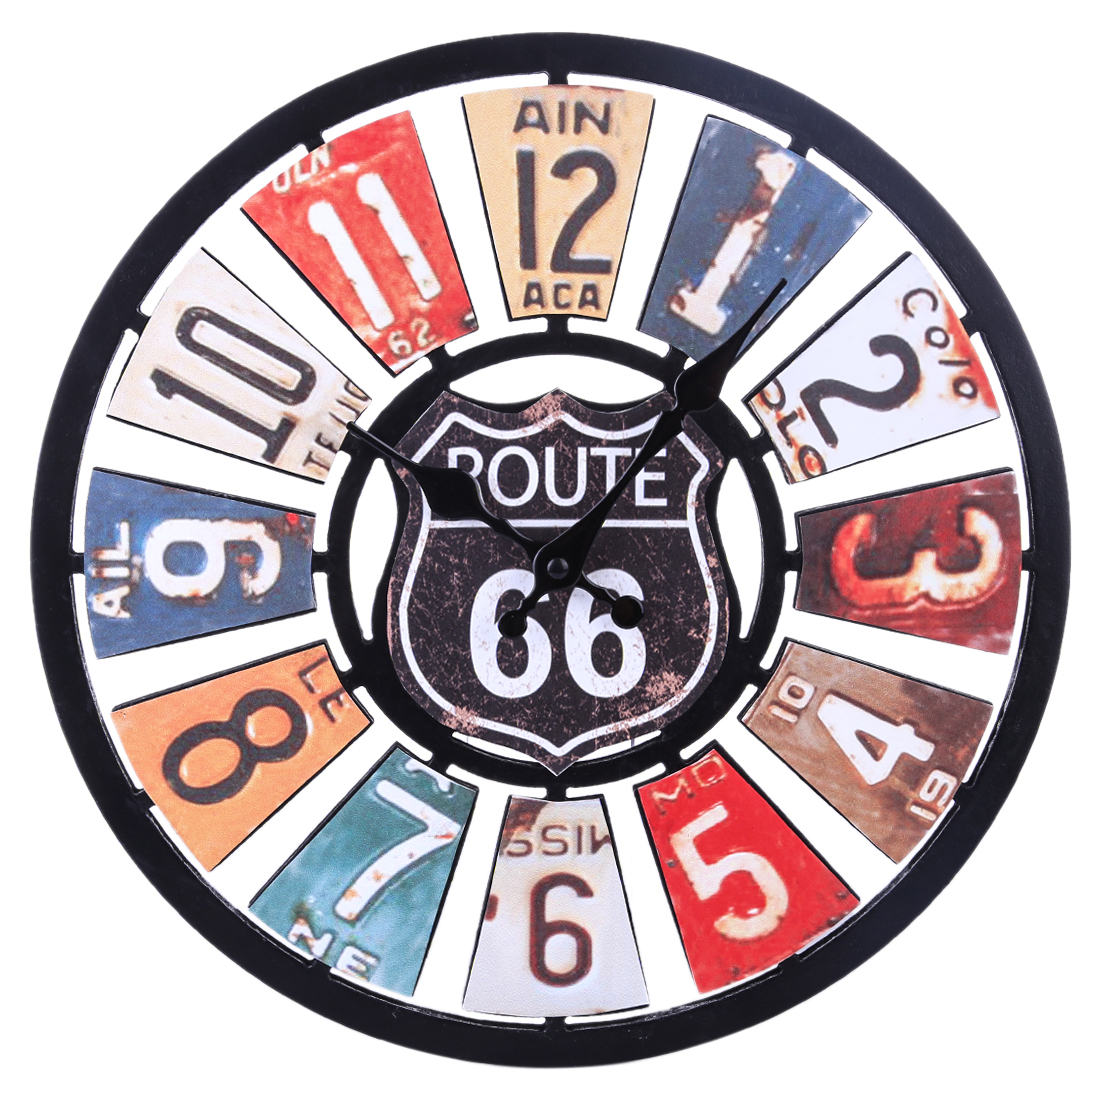 34cm Euramerican Retro Route 66 Silent Wall Clock Colorful Clocks For Home Decor Wall Clock Quartz Modern Design 2020 New